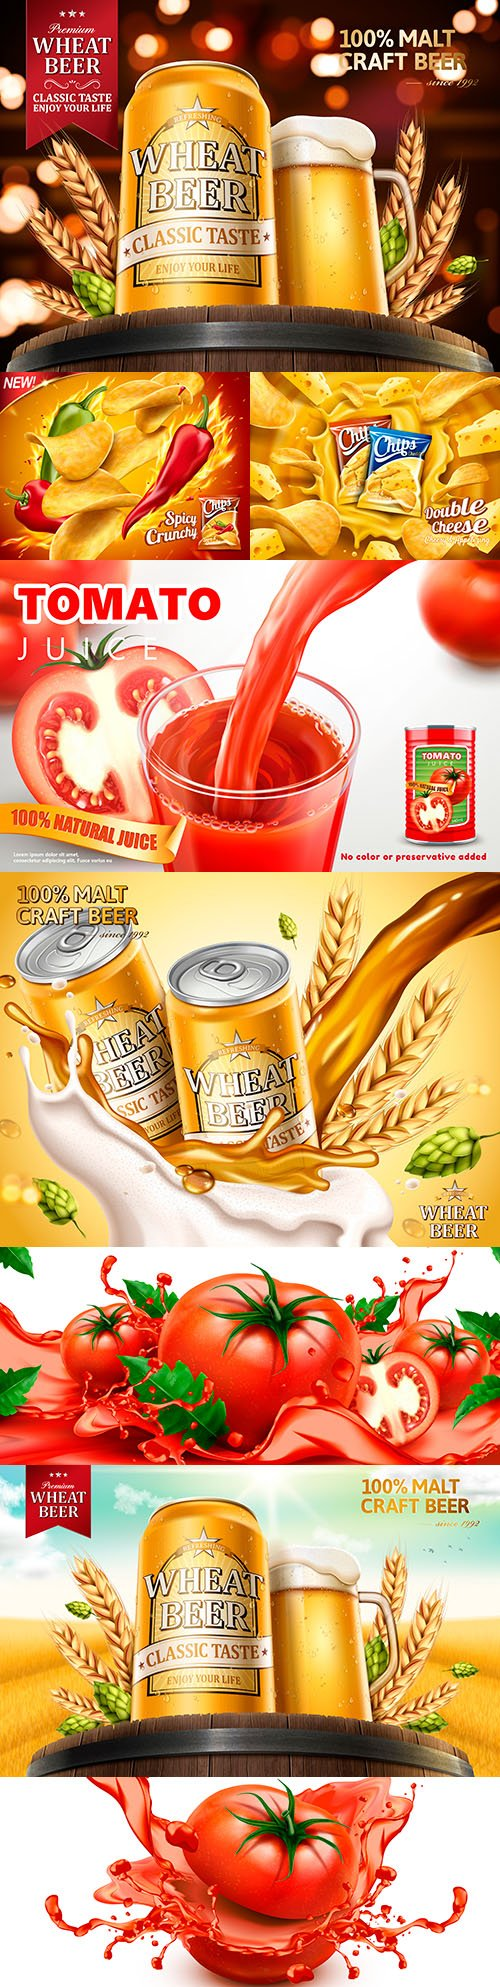 Advertising wheat beer and food design illustration